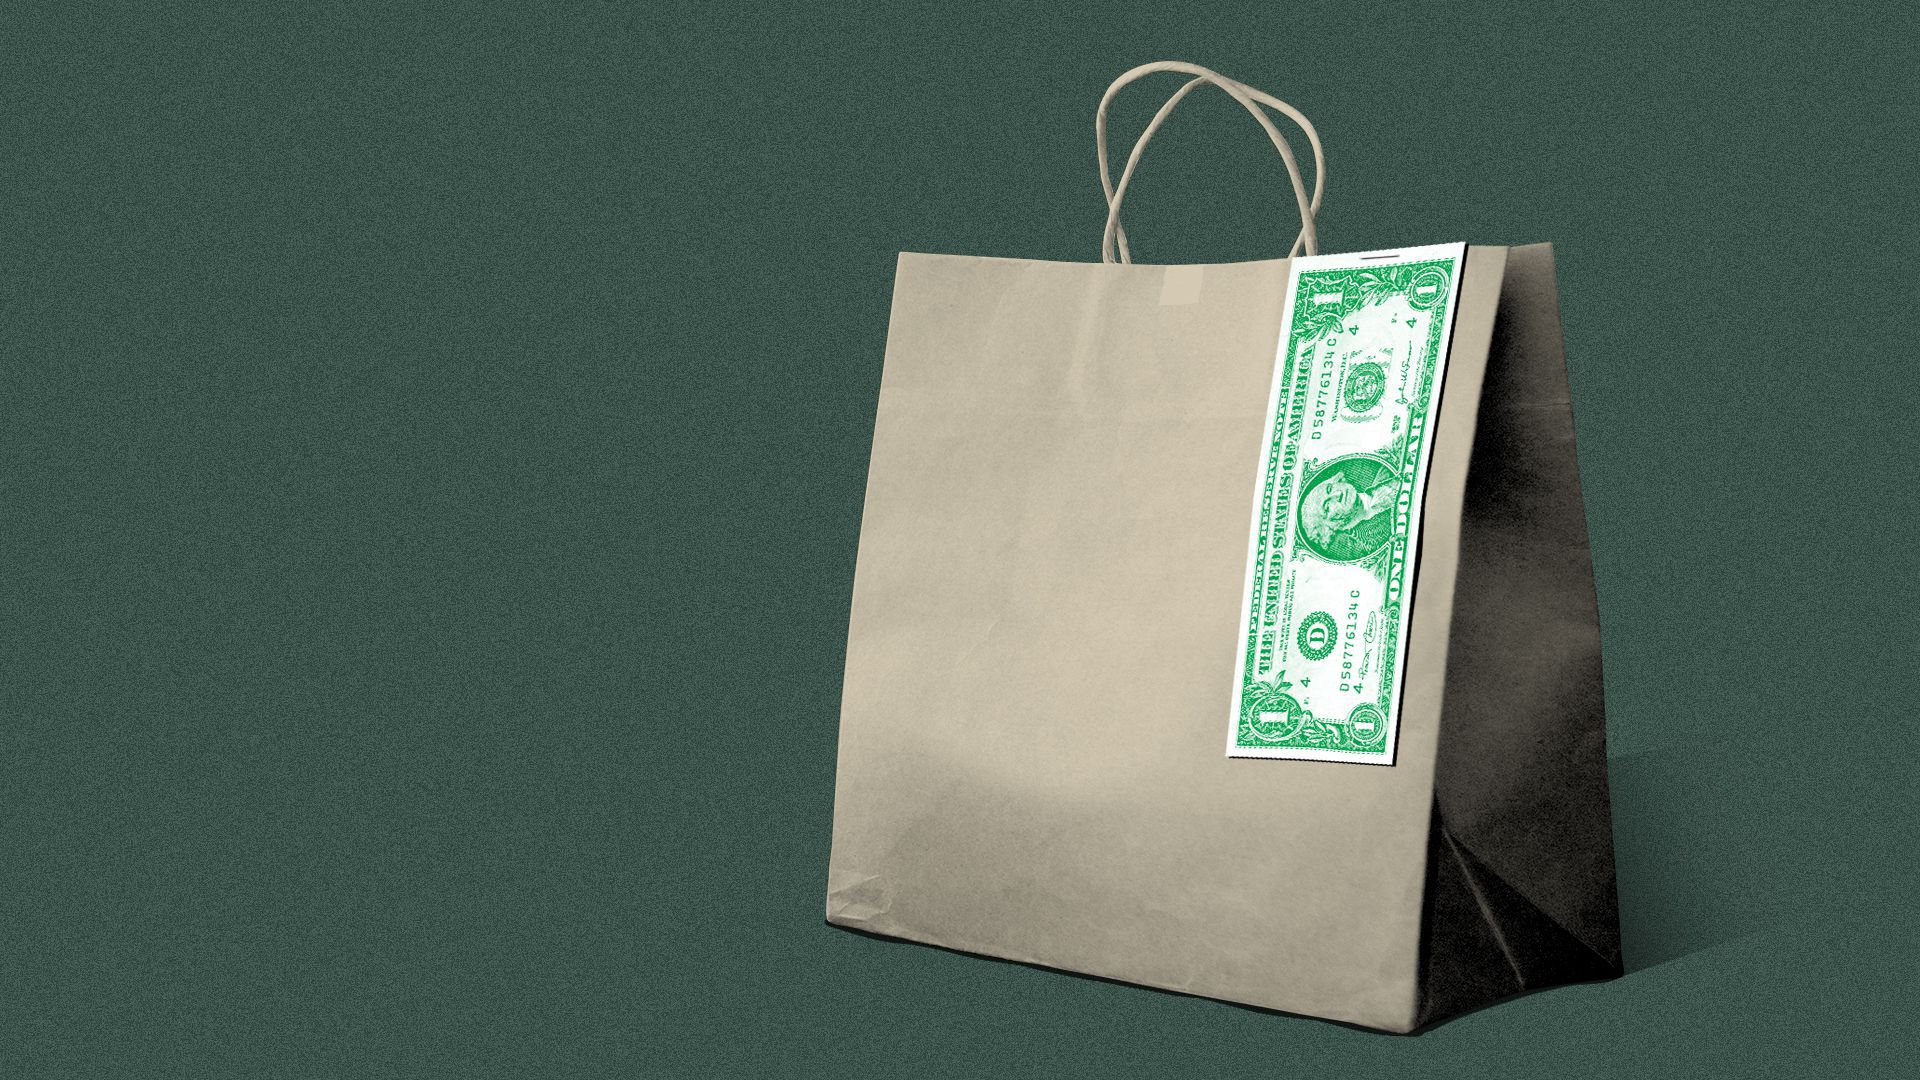 Illustration of a food delivery bag, with a dollar stapled to it instead of a receipt.